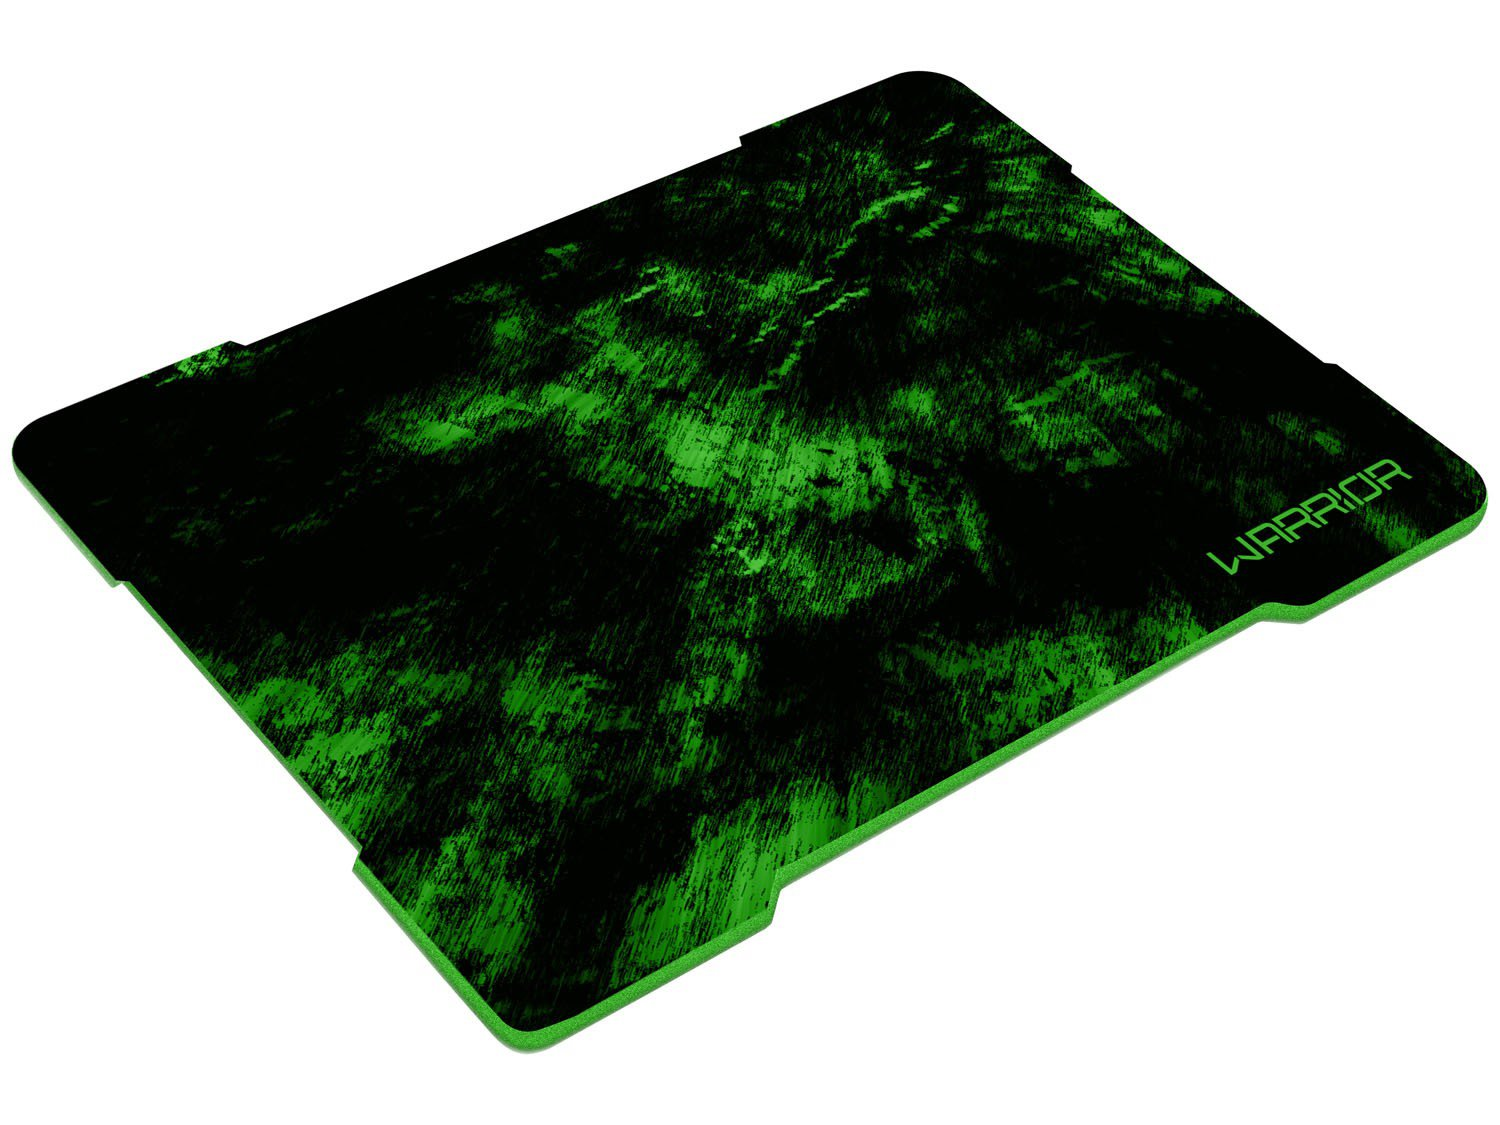 Foto 1 - Mouse Pad Multilaser - Warrior